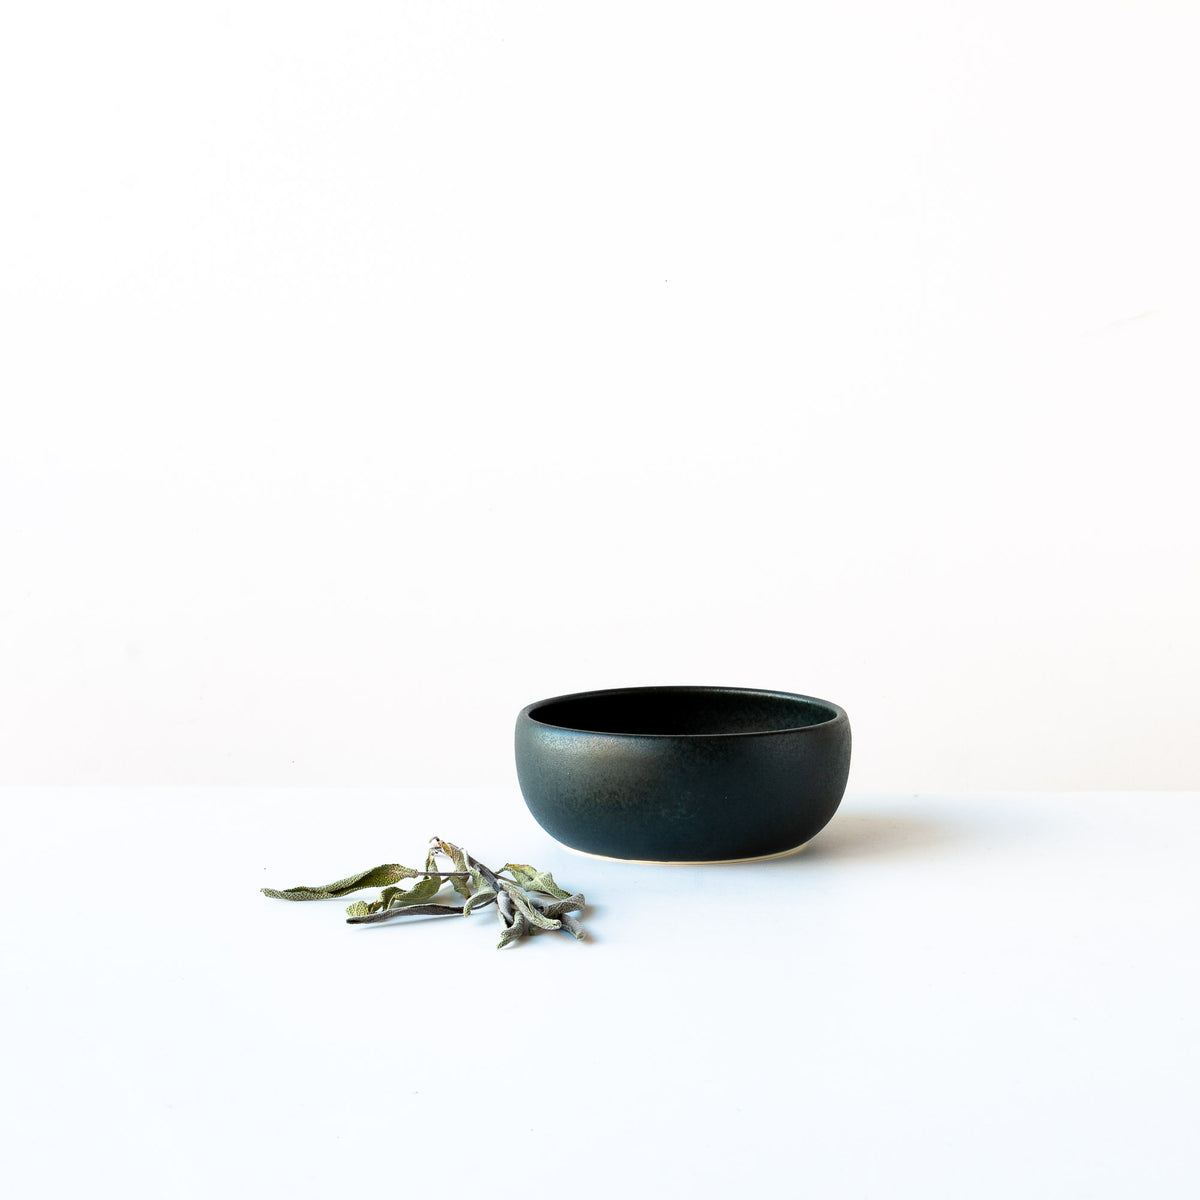 Black Satin Glazed Porcelain Small Flat Bowl - Sold by Chic & Basta